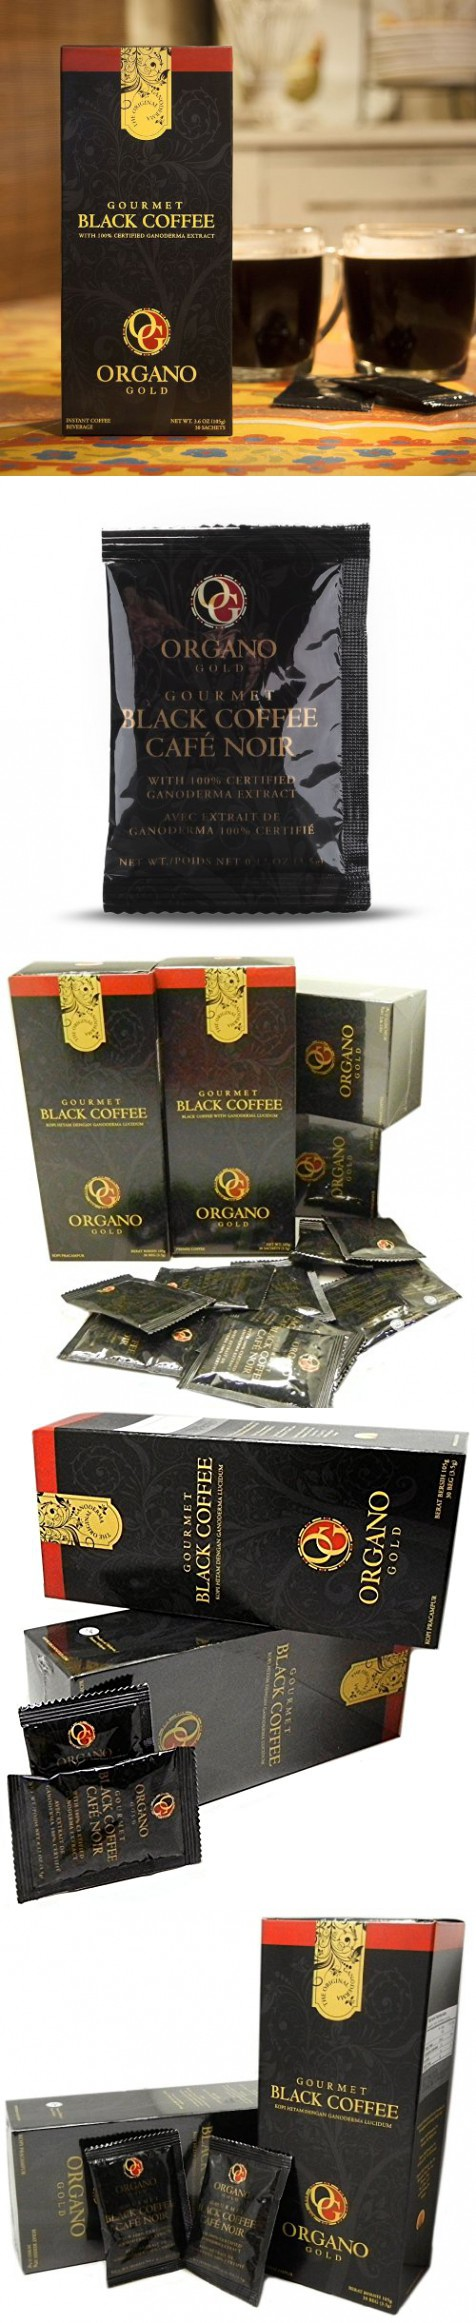 2 Boxes Organo Gold Gourmet Cafe Noir Black Coffee 100 Certified Ganoderma Extract Sealed 1 Box Of 30 Sachets Gourmet Cafe Black Coffee Organo Gold